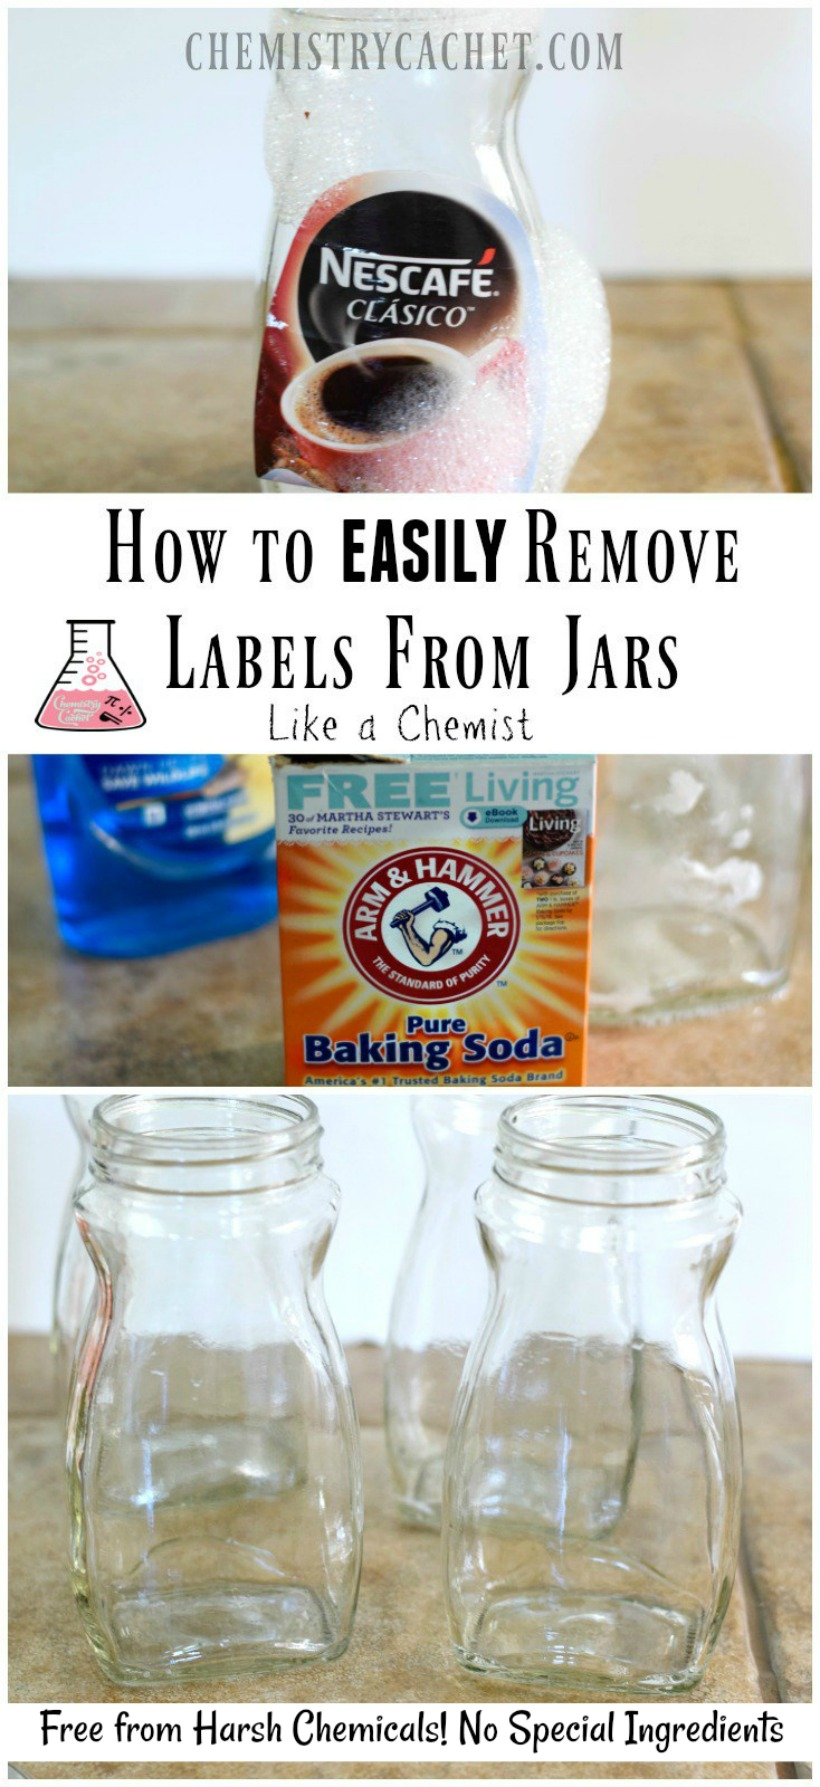 How To Remove Labels From Jars Like A Chemist